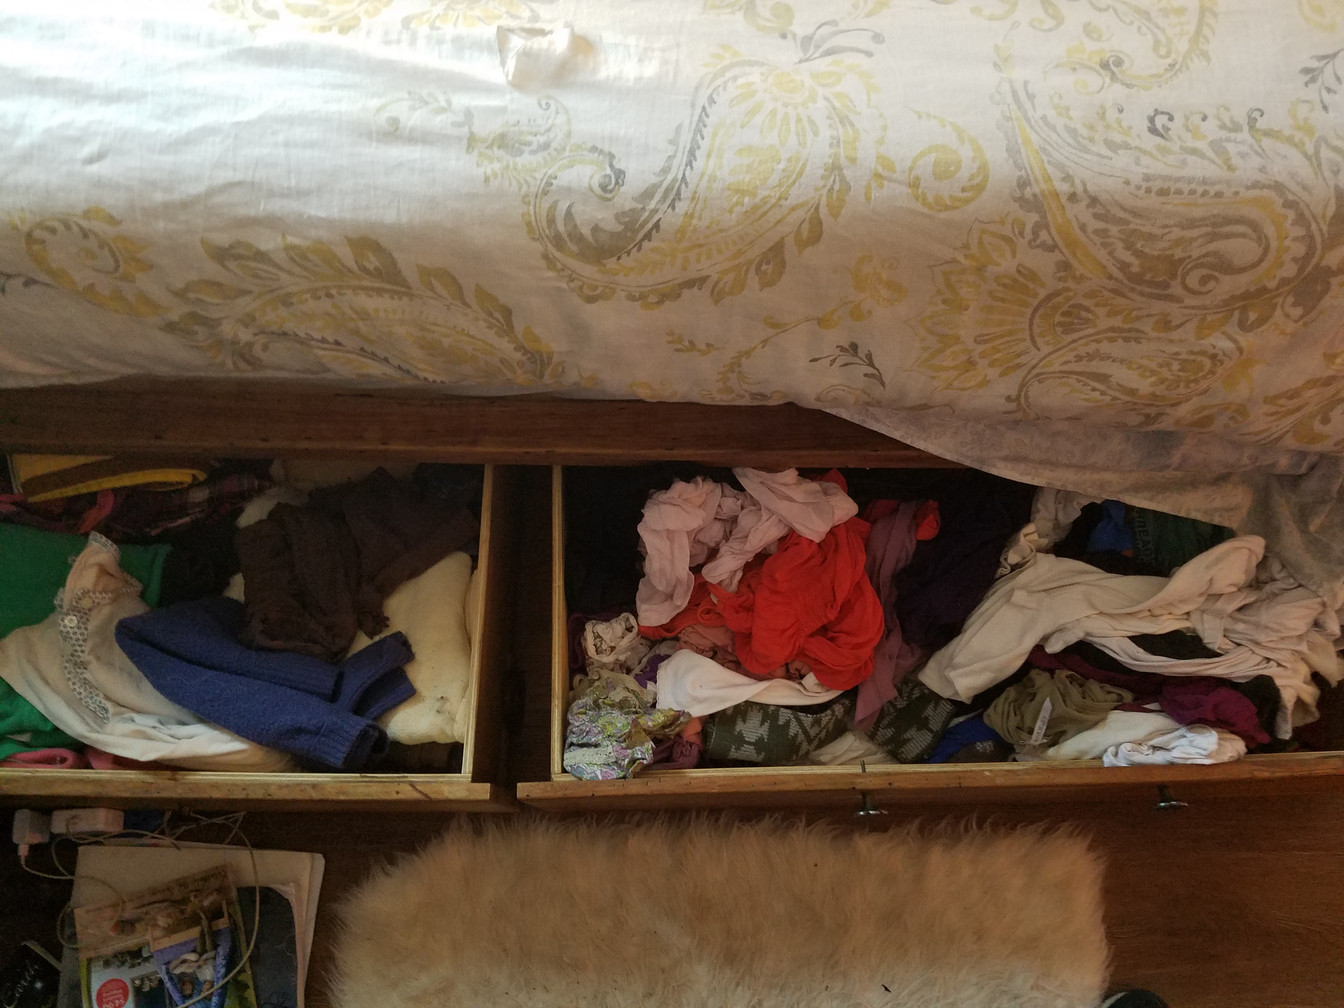 DRAWER: BEFORE